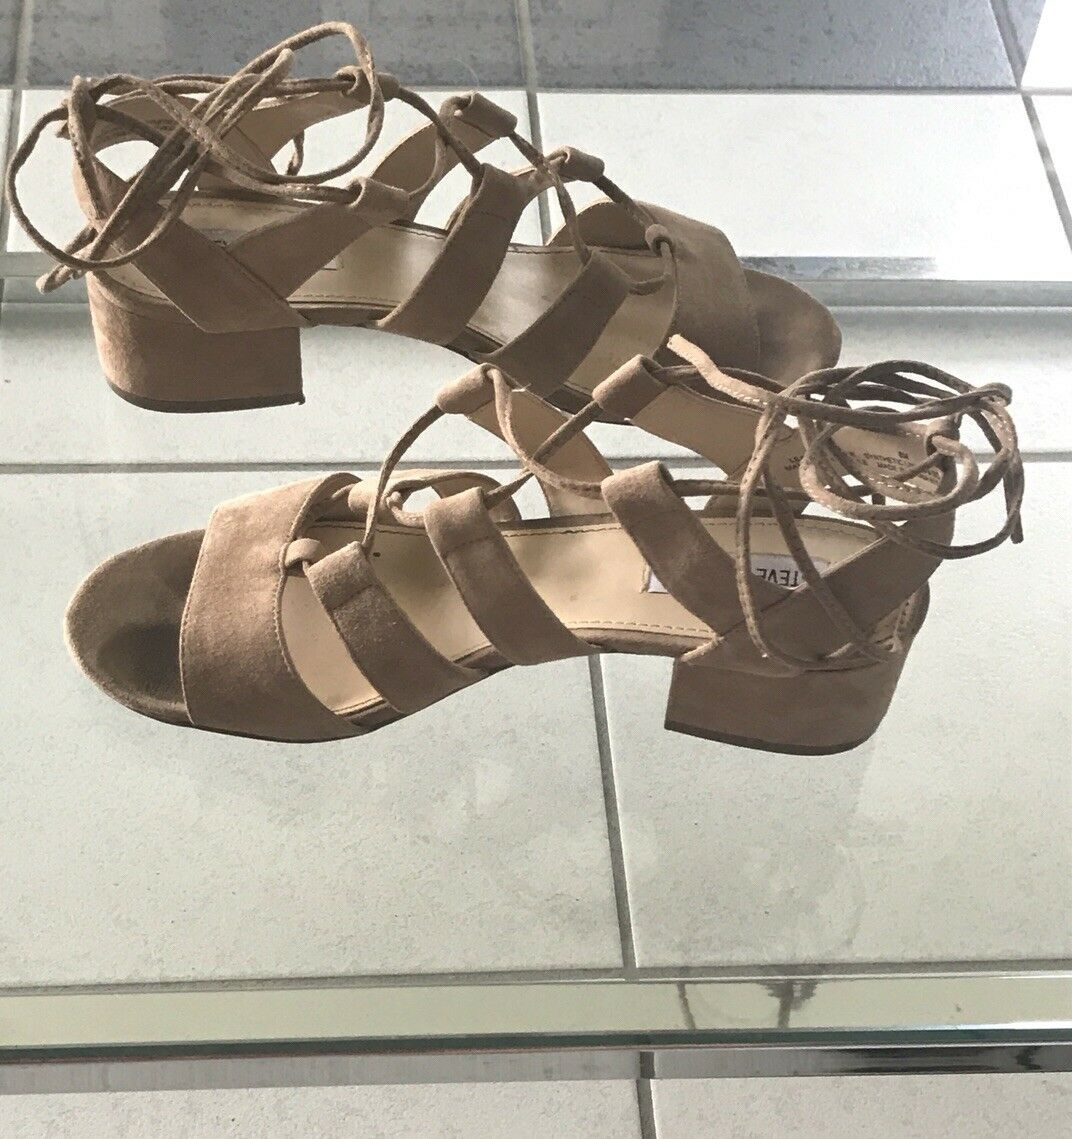 Kitty Steve Madden Suede Lace Up Sandales Beige 8 Größe 8 Beige Chunky Stacked Heel 137894